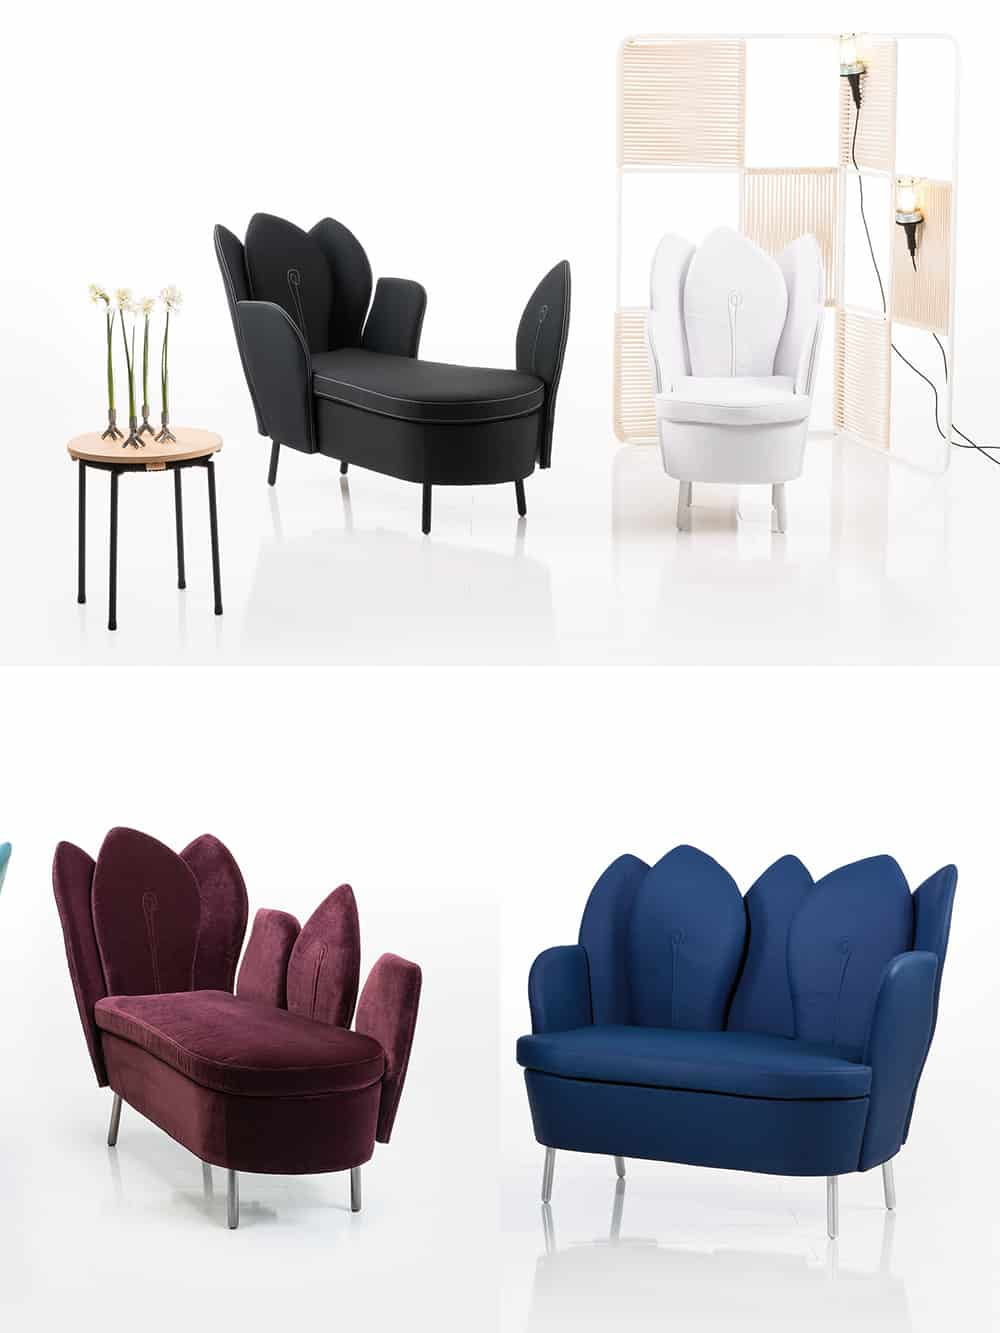 Furniture trends 2018 photos tendencies and combinations for New chair design